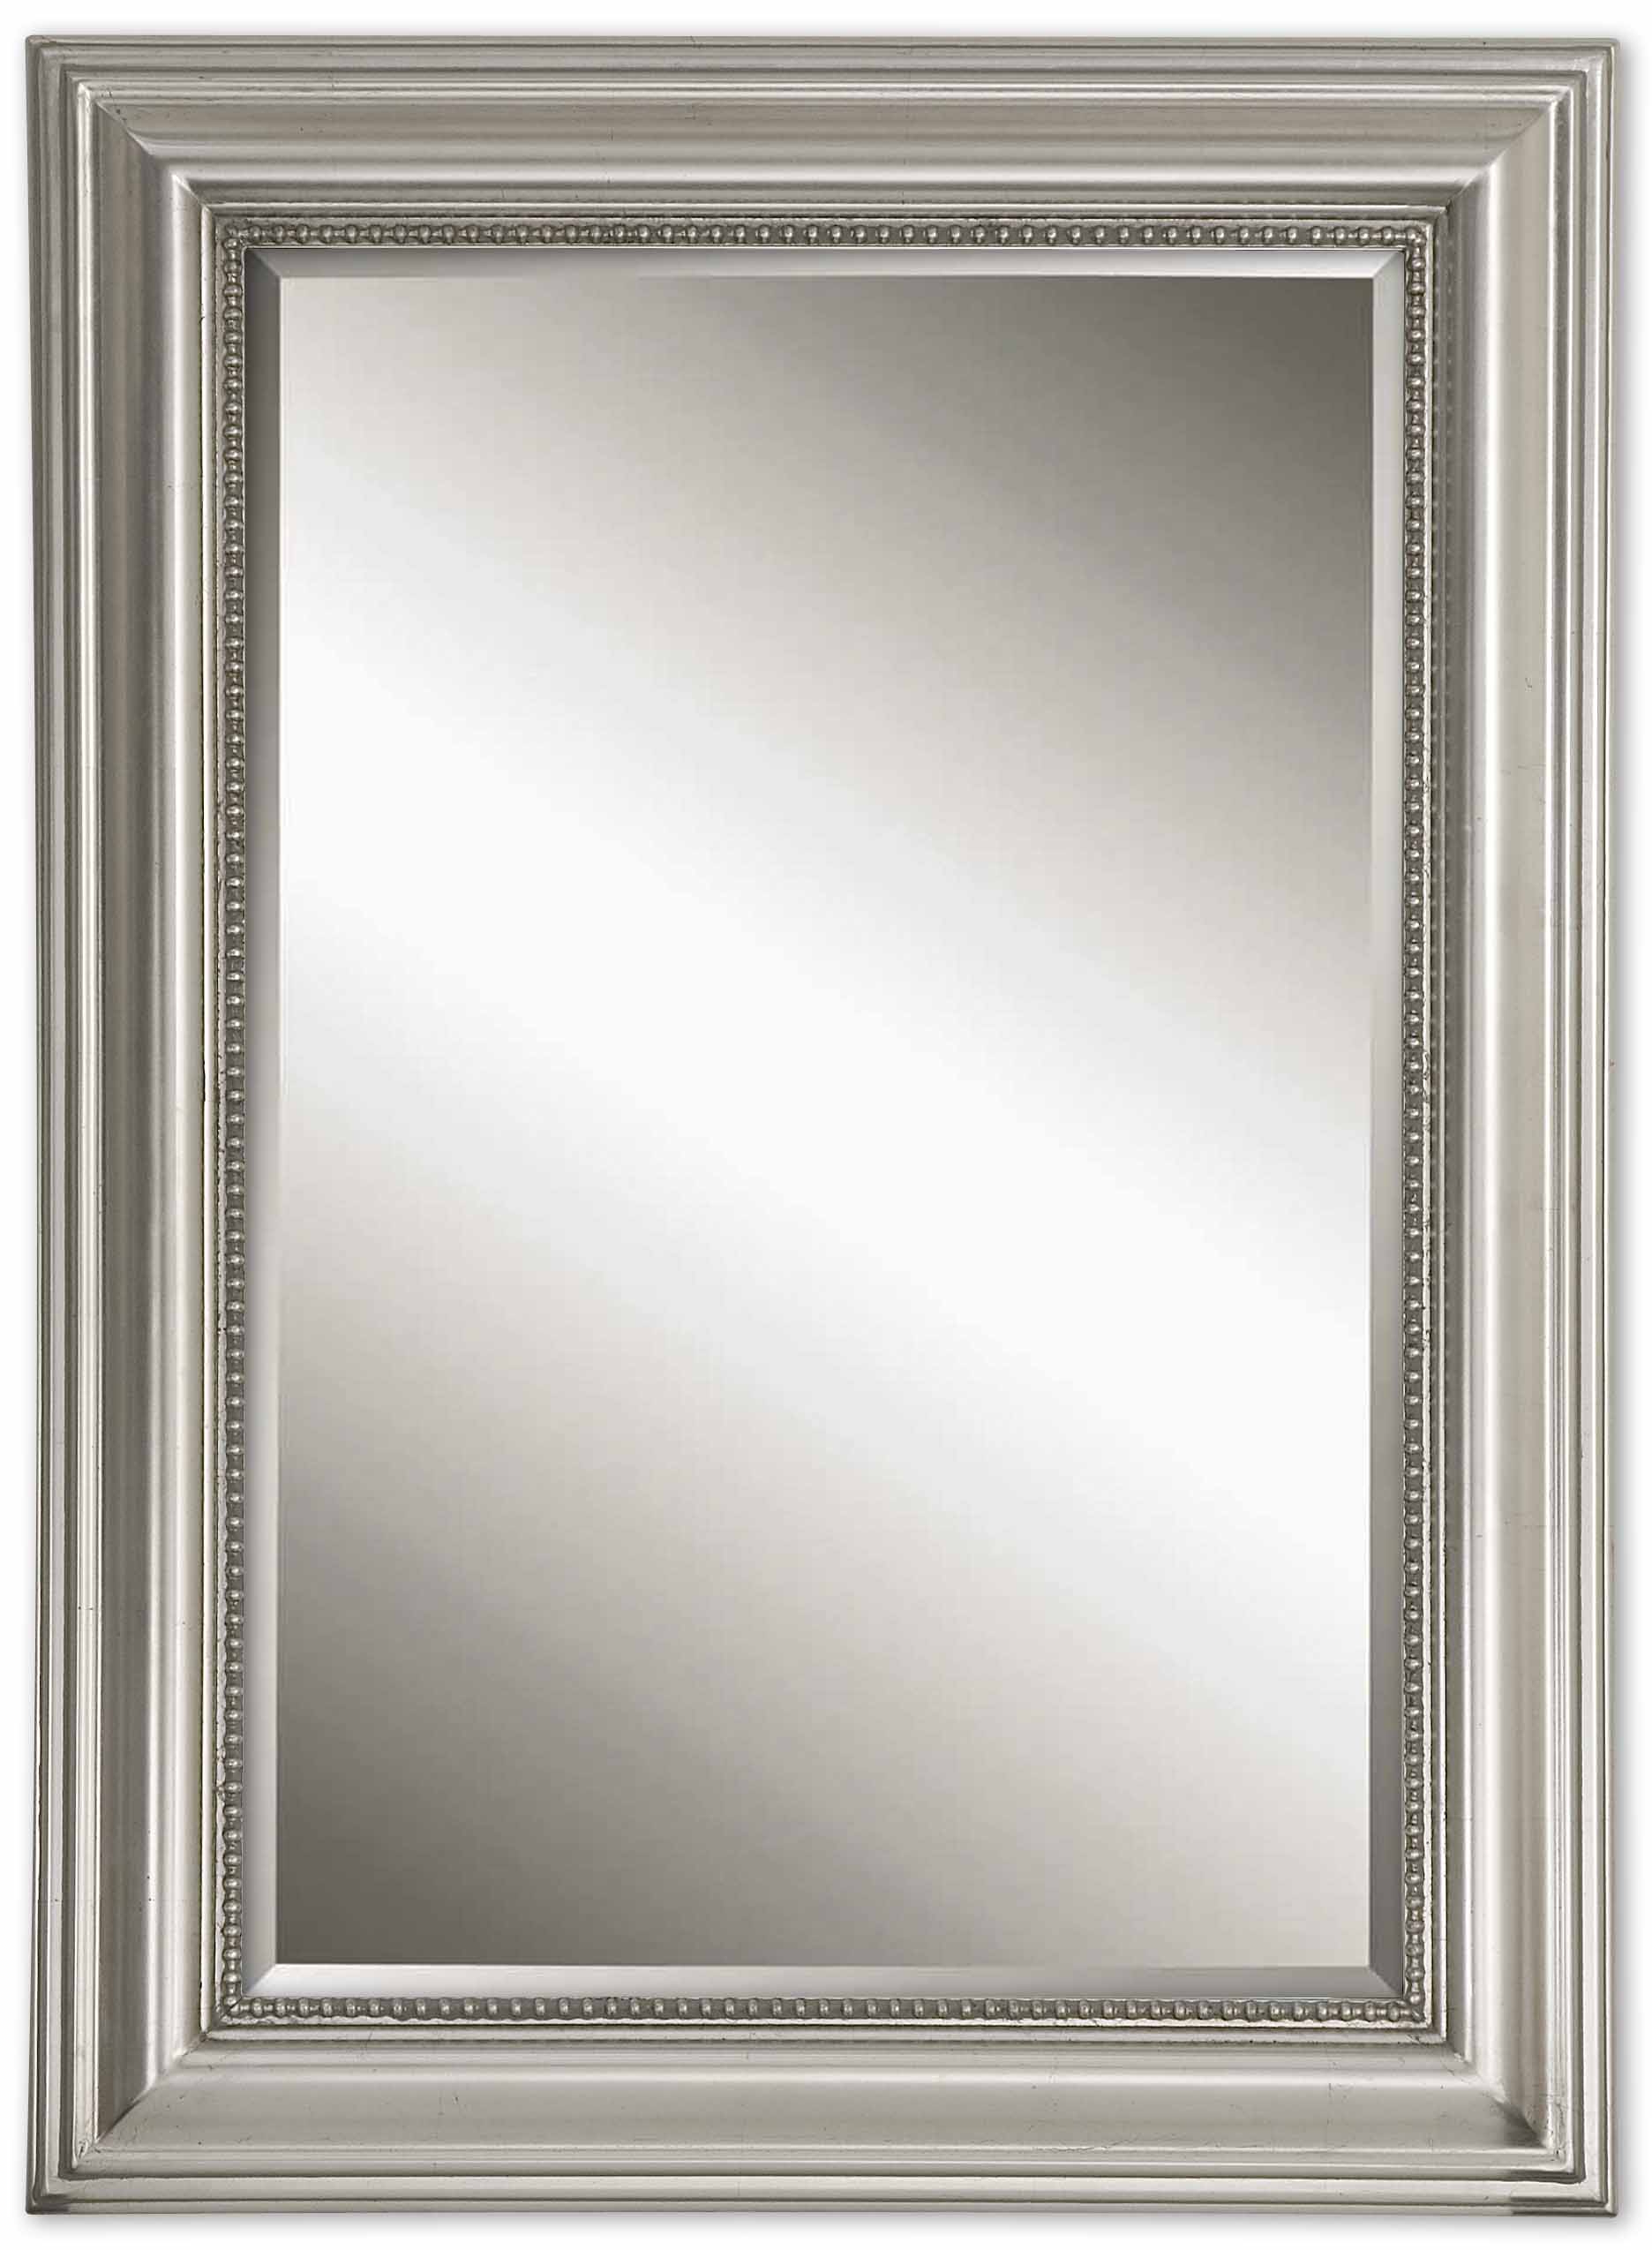 Stuart Silver Beaded Wall Mirroruttermost – 27″ X 37″ Pertaining To Best And Newest Silver Beaded Wall Mirrors (Gallery 4 of 20)